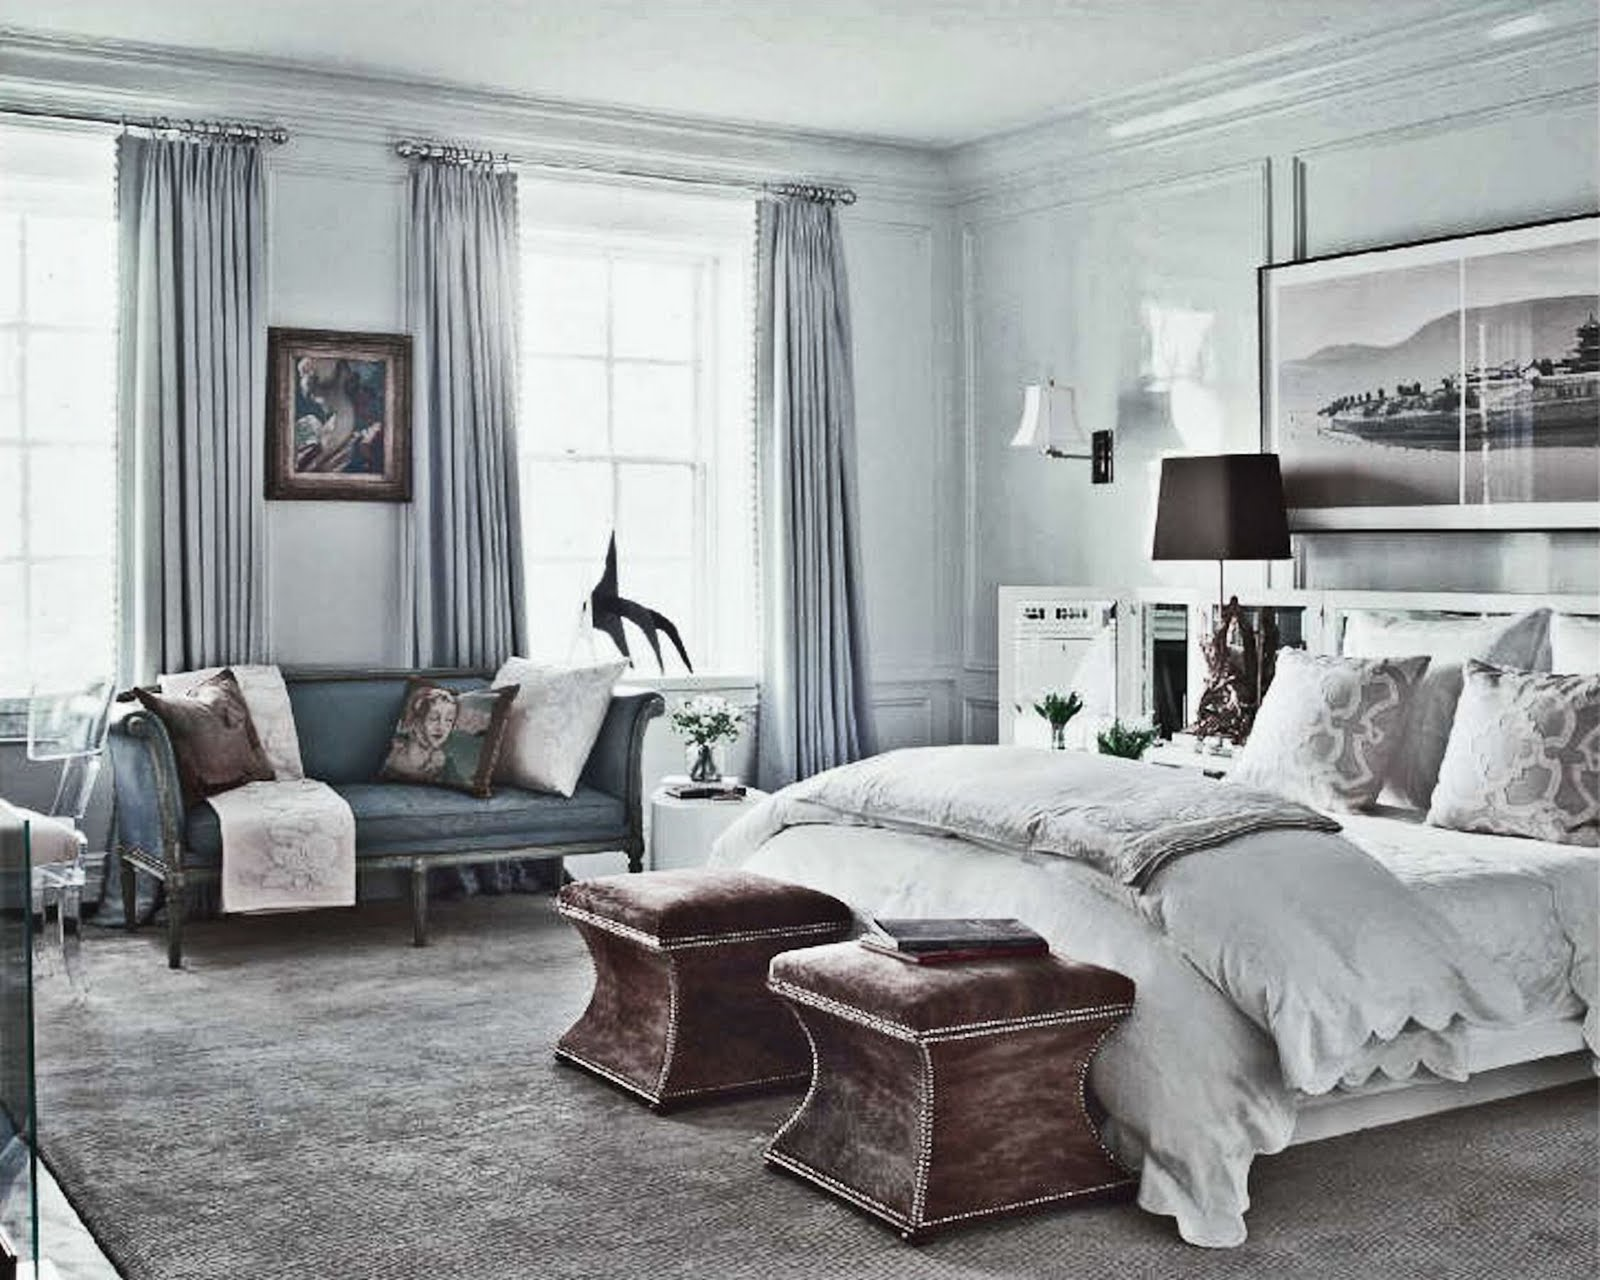 amazing-soft-grey-fabric-chesterfield-couch-style-also-gray-curtain-for-wide-windows-as-well-as-white-wall-lights-over-large-white-master-bedding-in-vintage-grey-bedroom-ideas-271